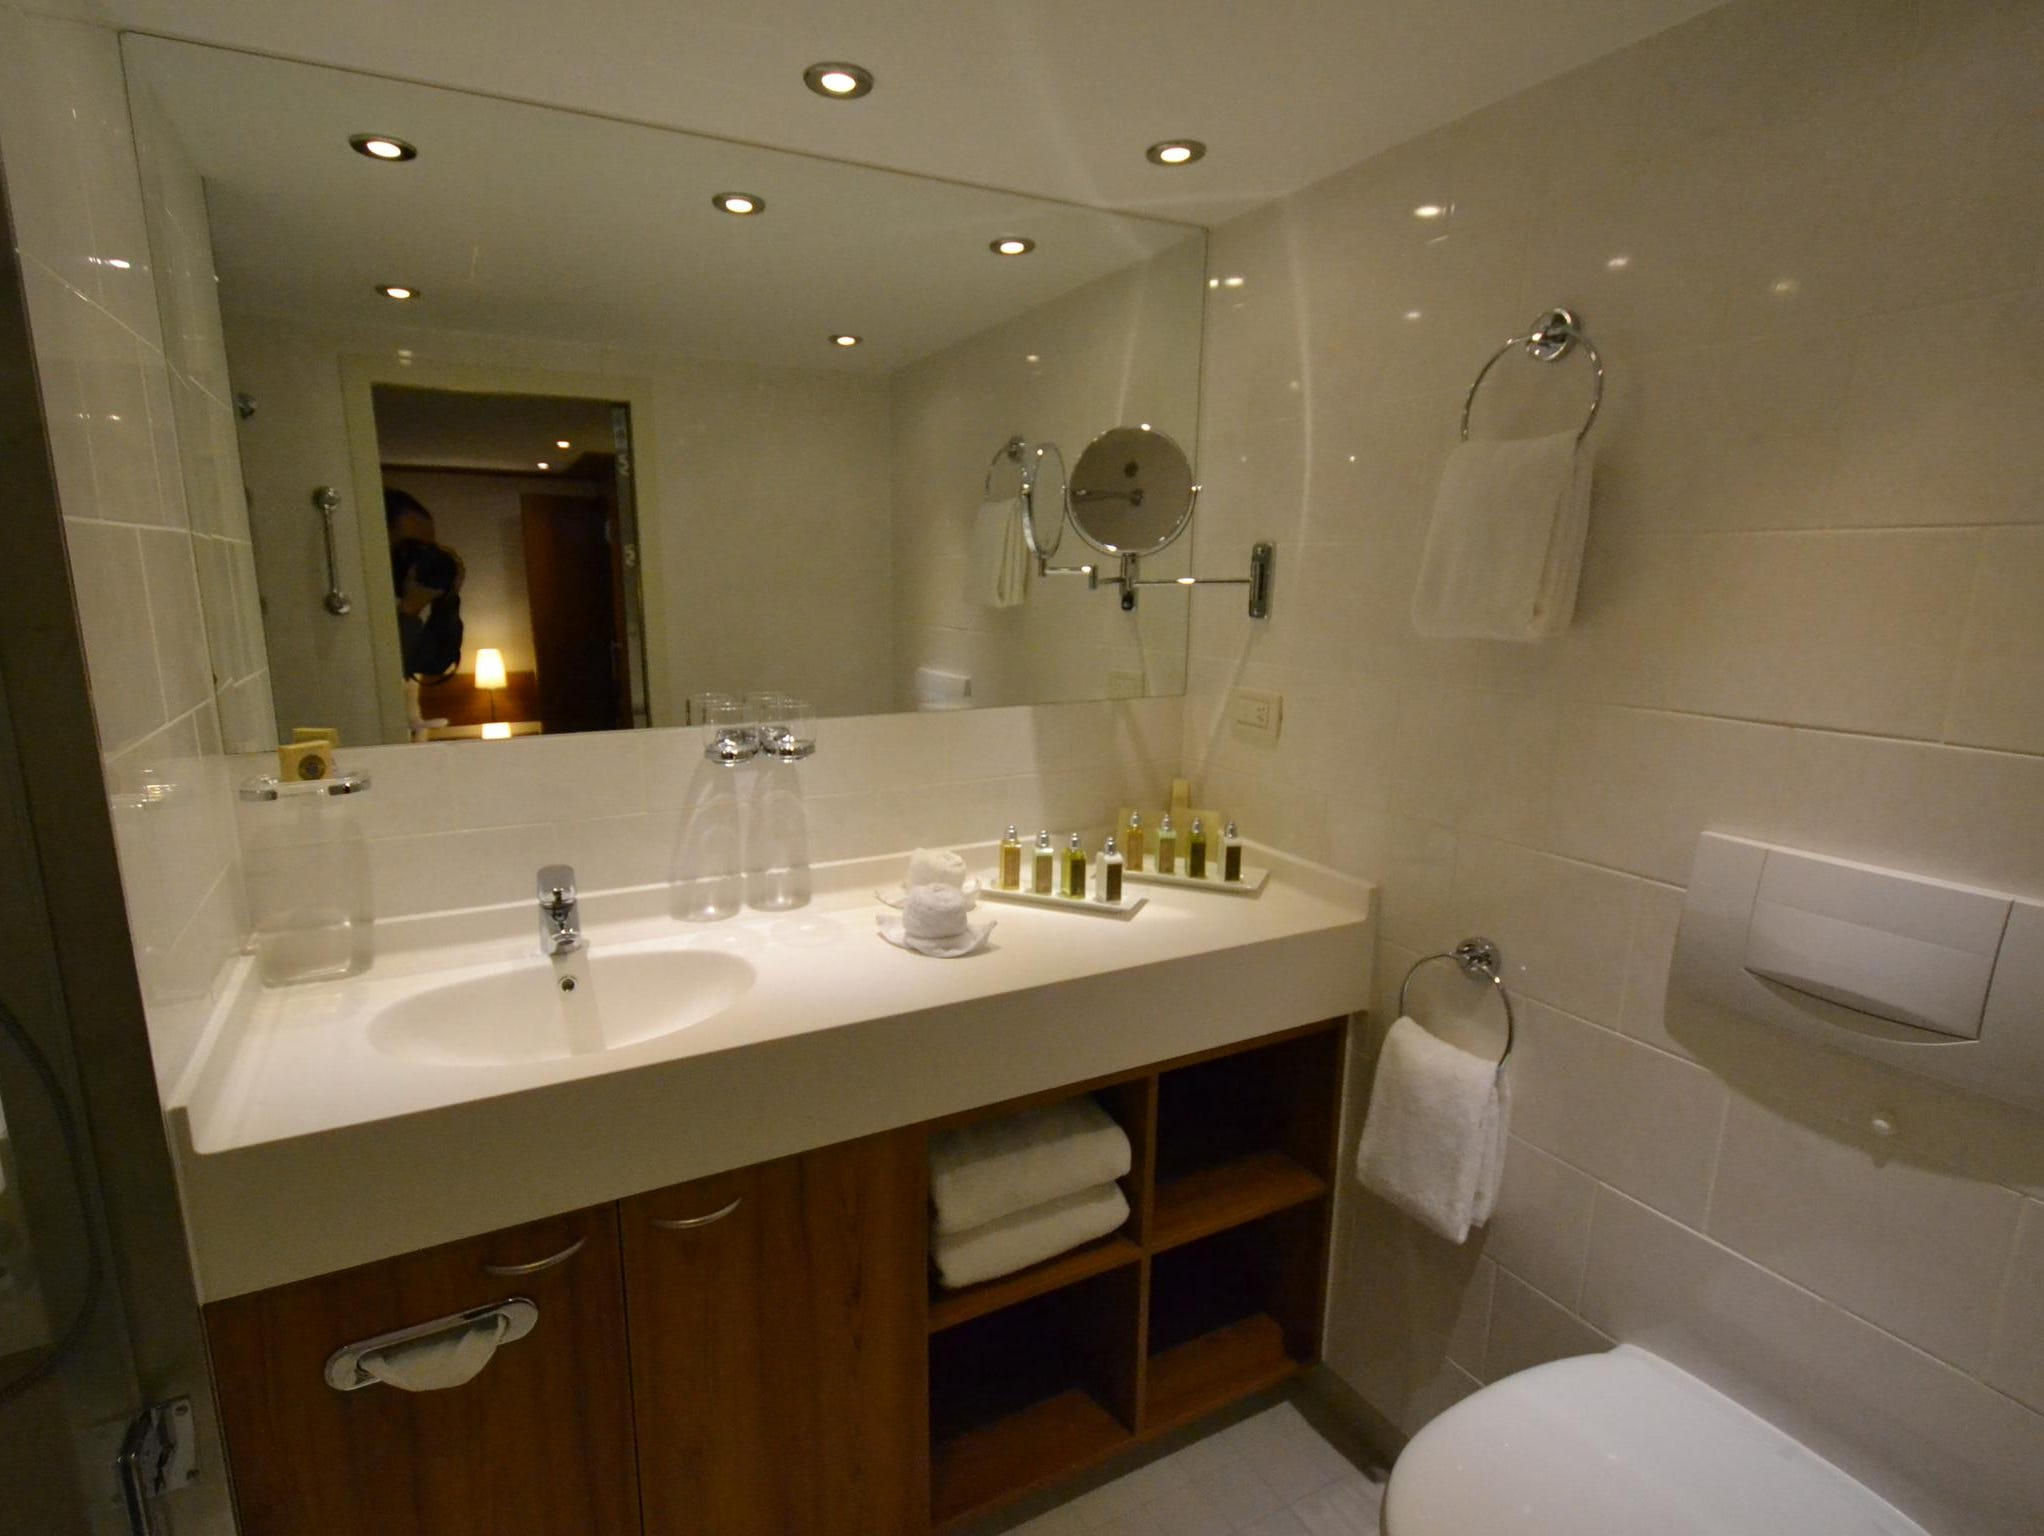 A Deluxe Suite bathroom.